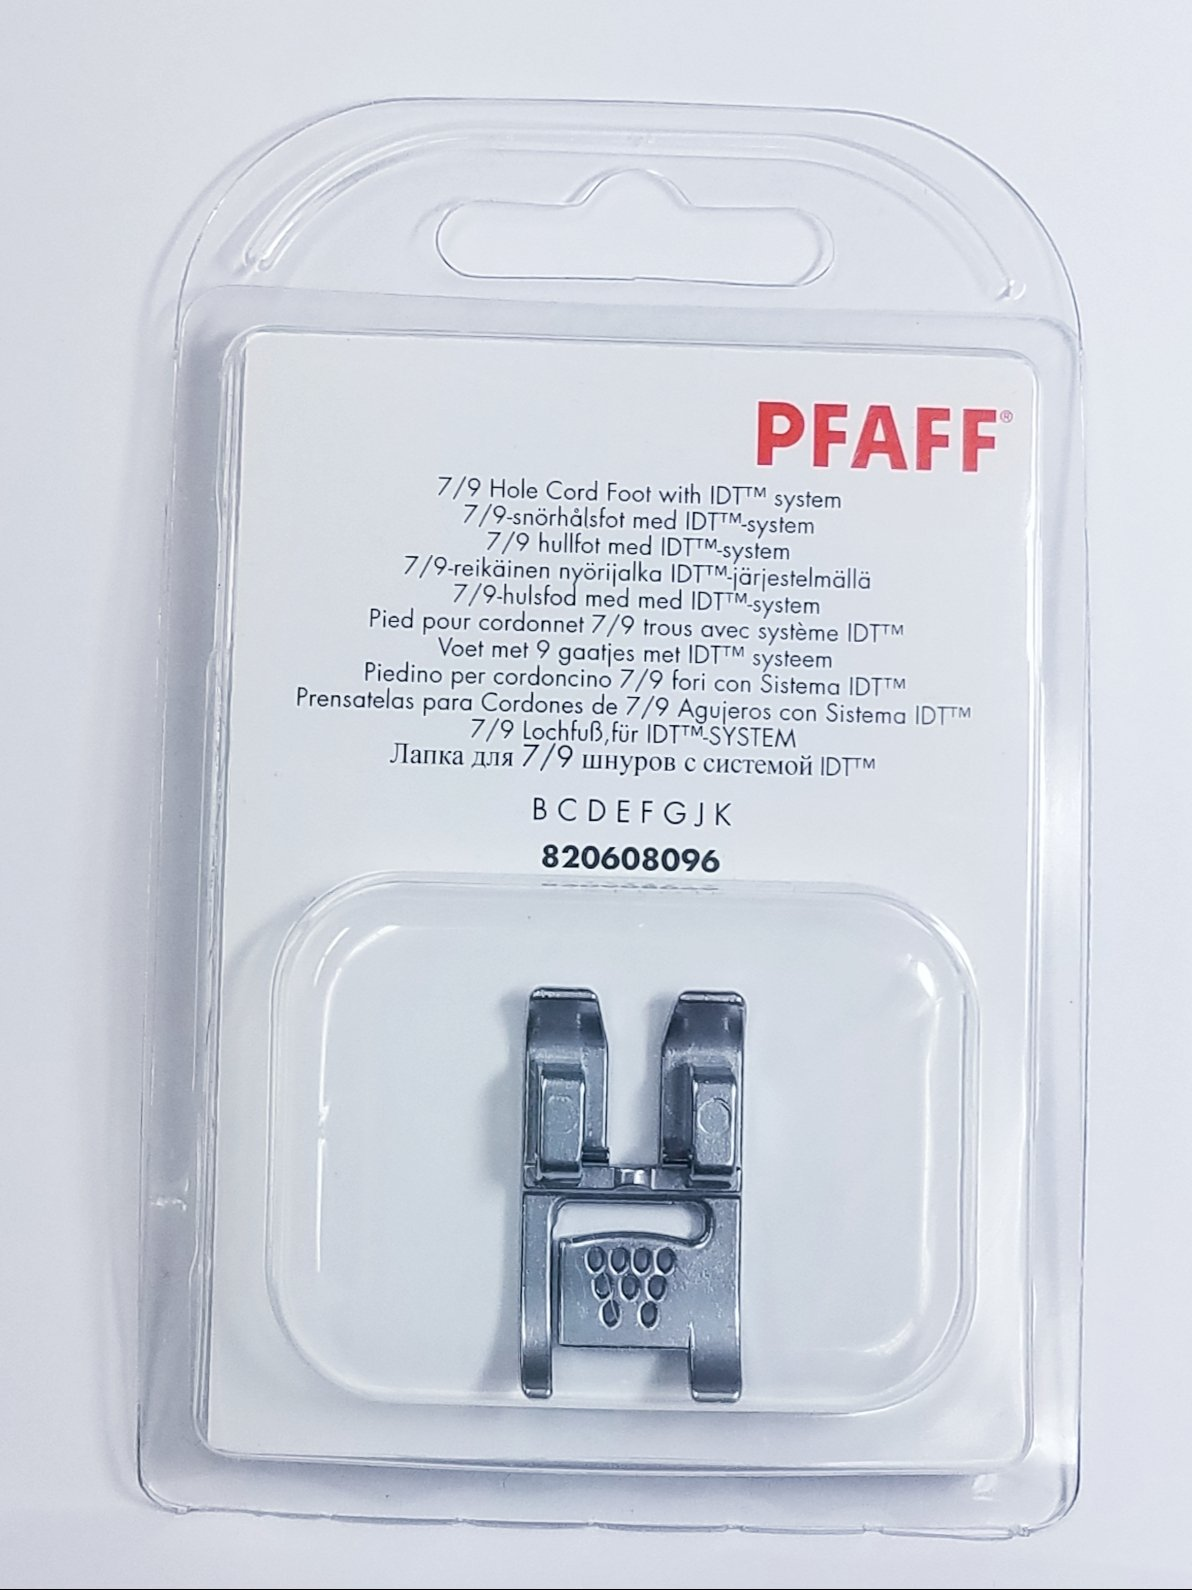 Pfaff 7/9 Hole Cord Foot with IDT